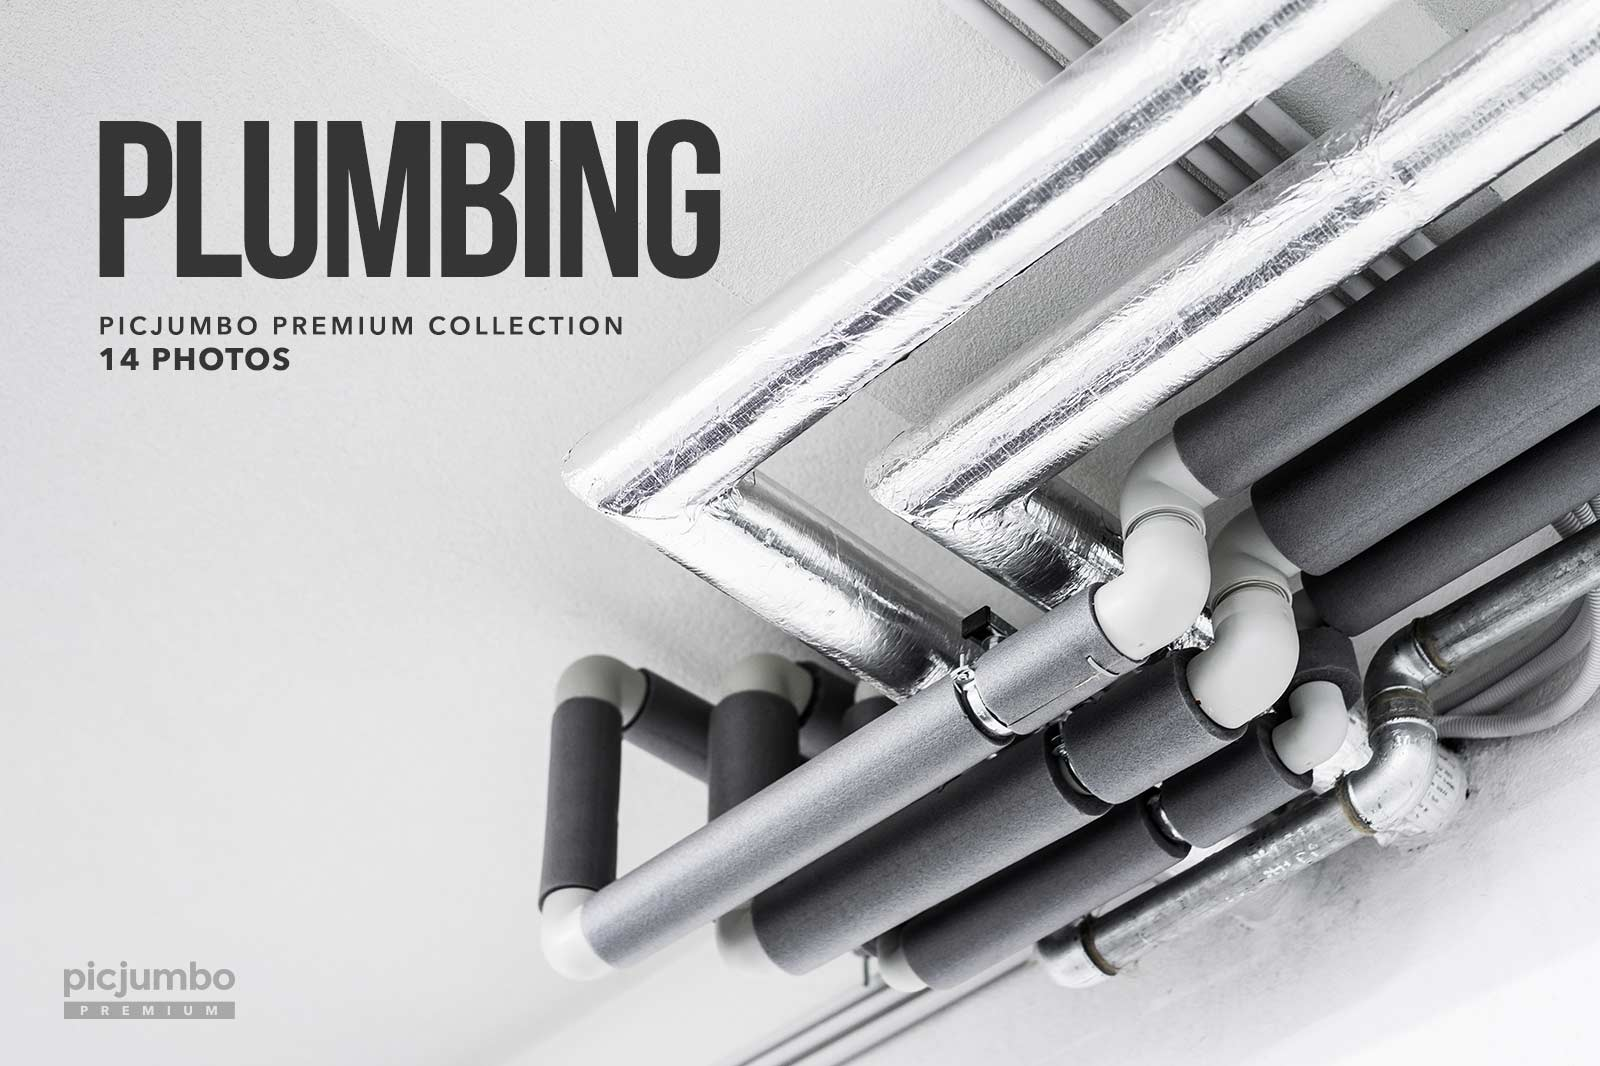 Plumbing — get it now in picjumbo PREMIUM!